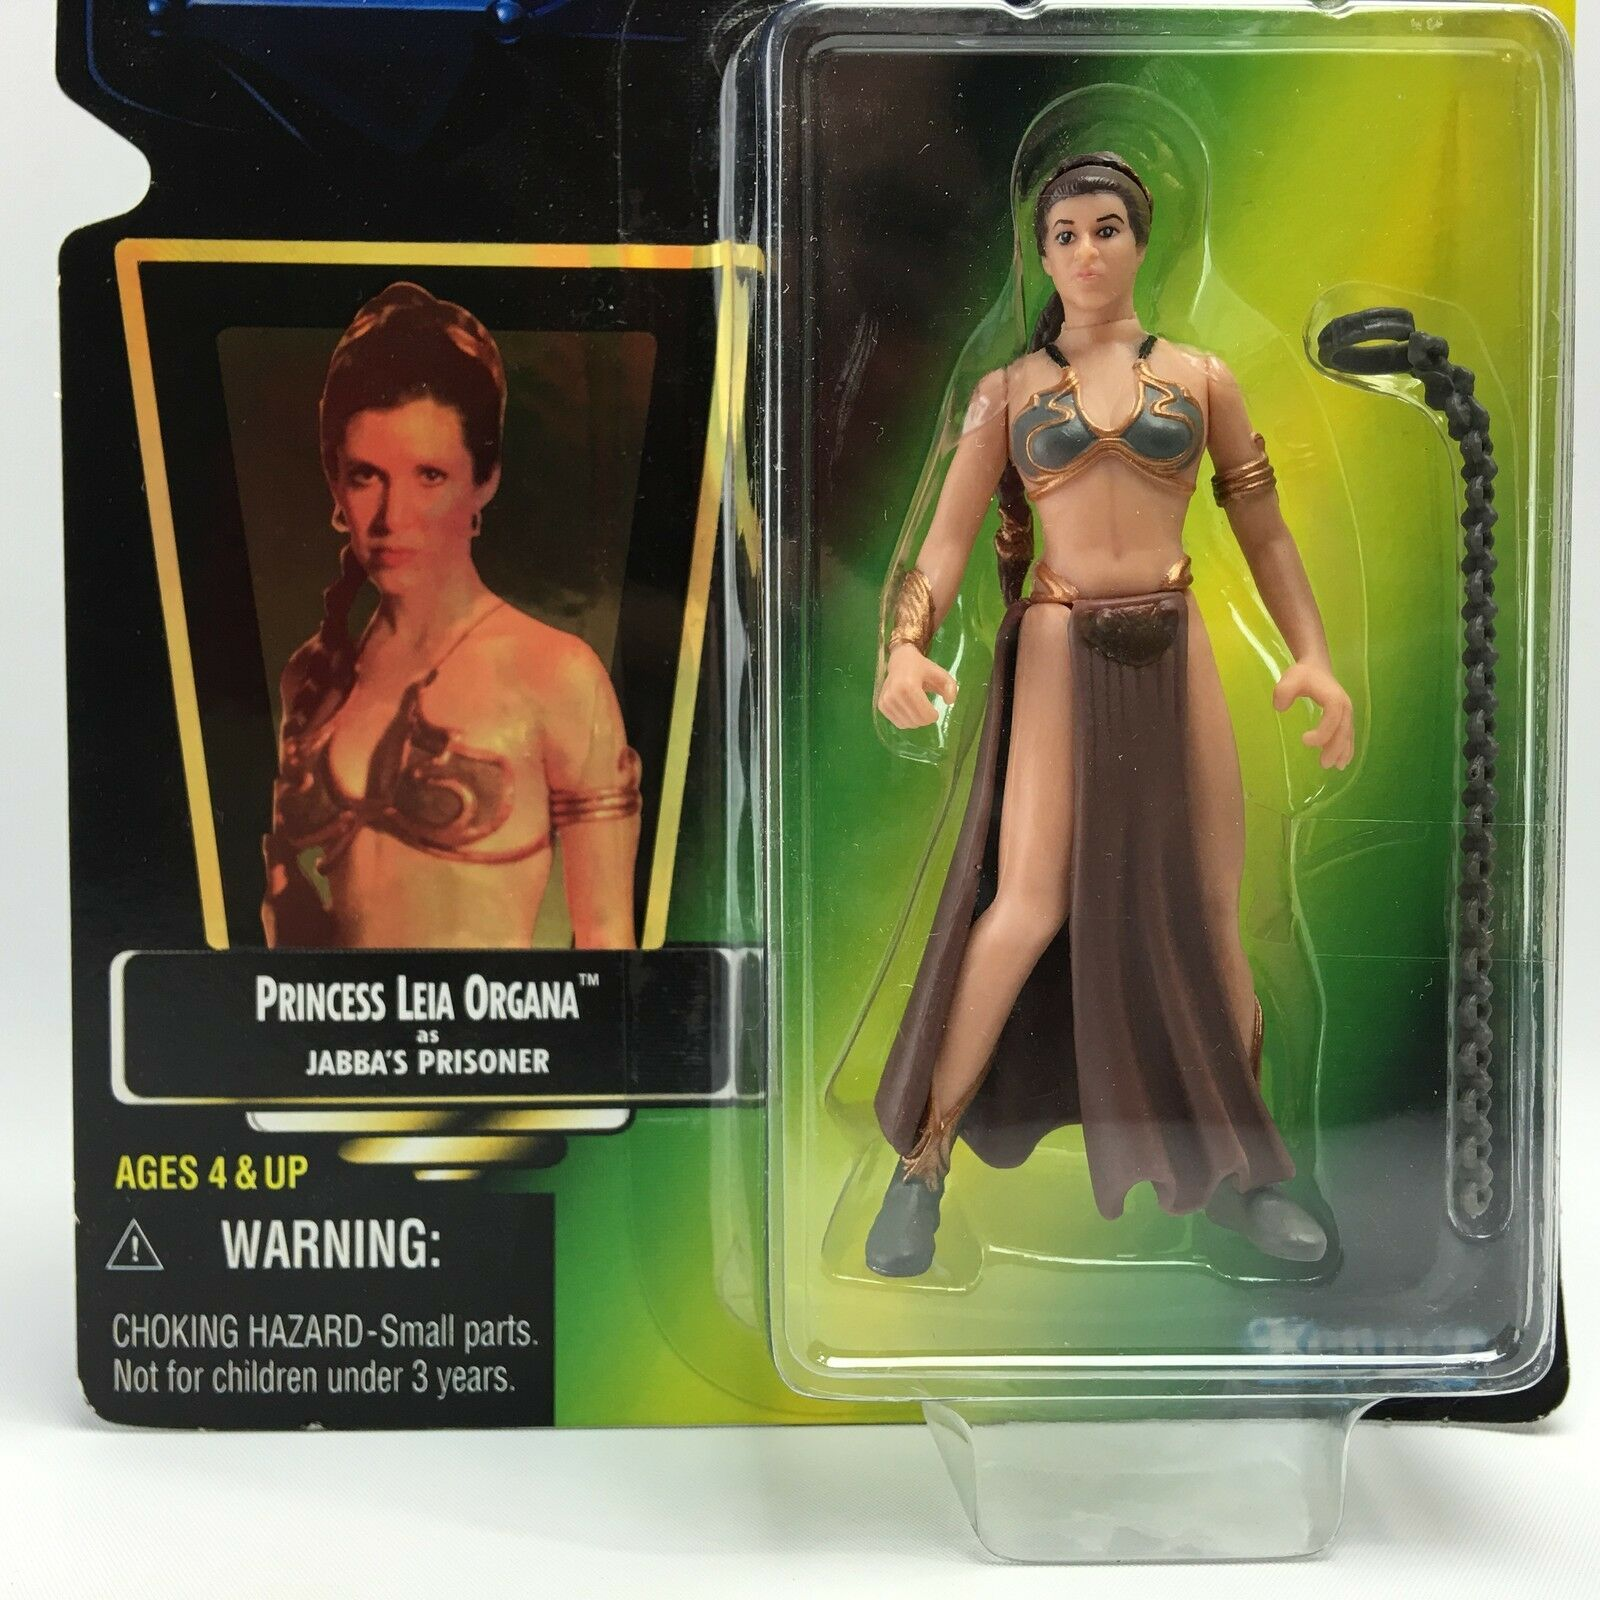 Figurine StarWars : Star Wars POTF2/PRINCESS LEIA ORGANA JABBA'S PRISONER/Kenner 1997/Green HOLO  #2